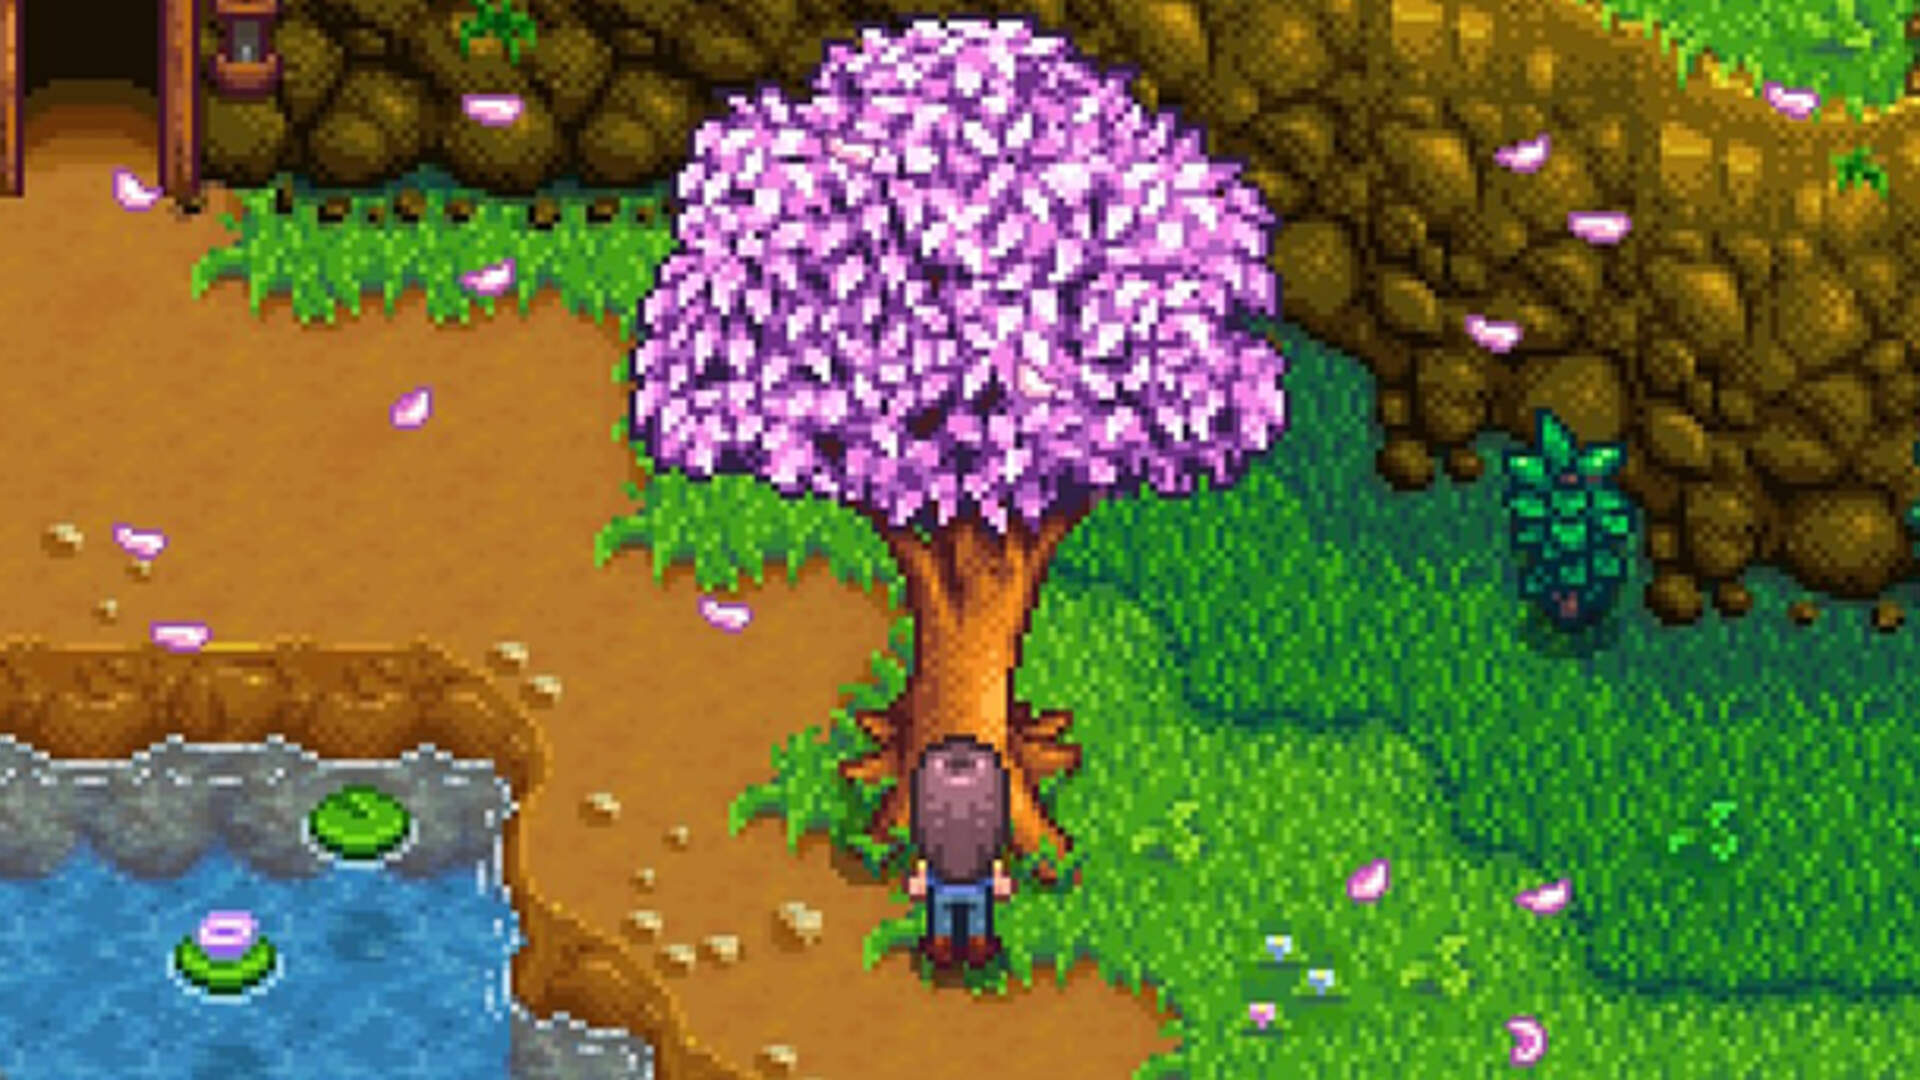 Stardew Valley Was the Most-Downloaded Game on the Nintendo Switch in 2017